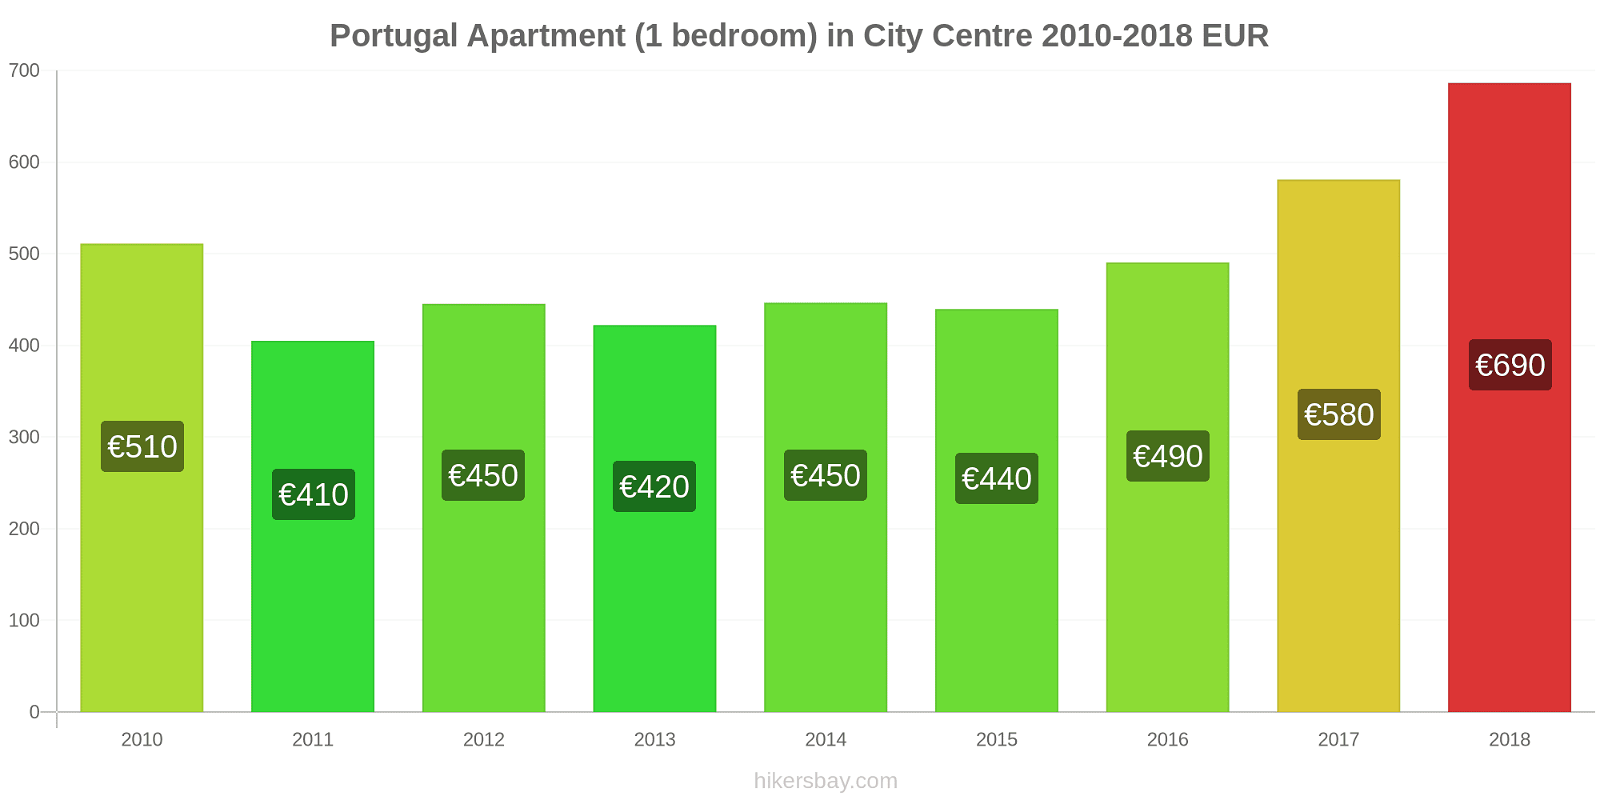 Portugal price changes Apartment (1 bedroom) in City Centre hikersbay.com